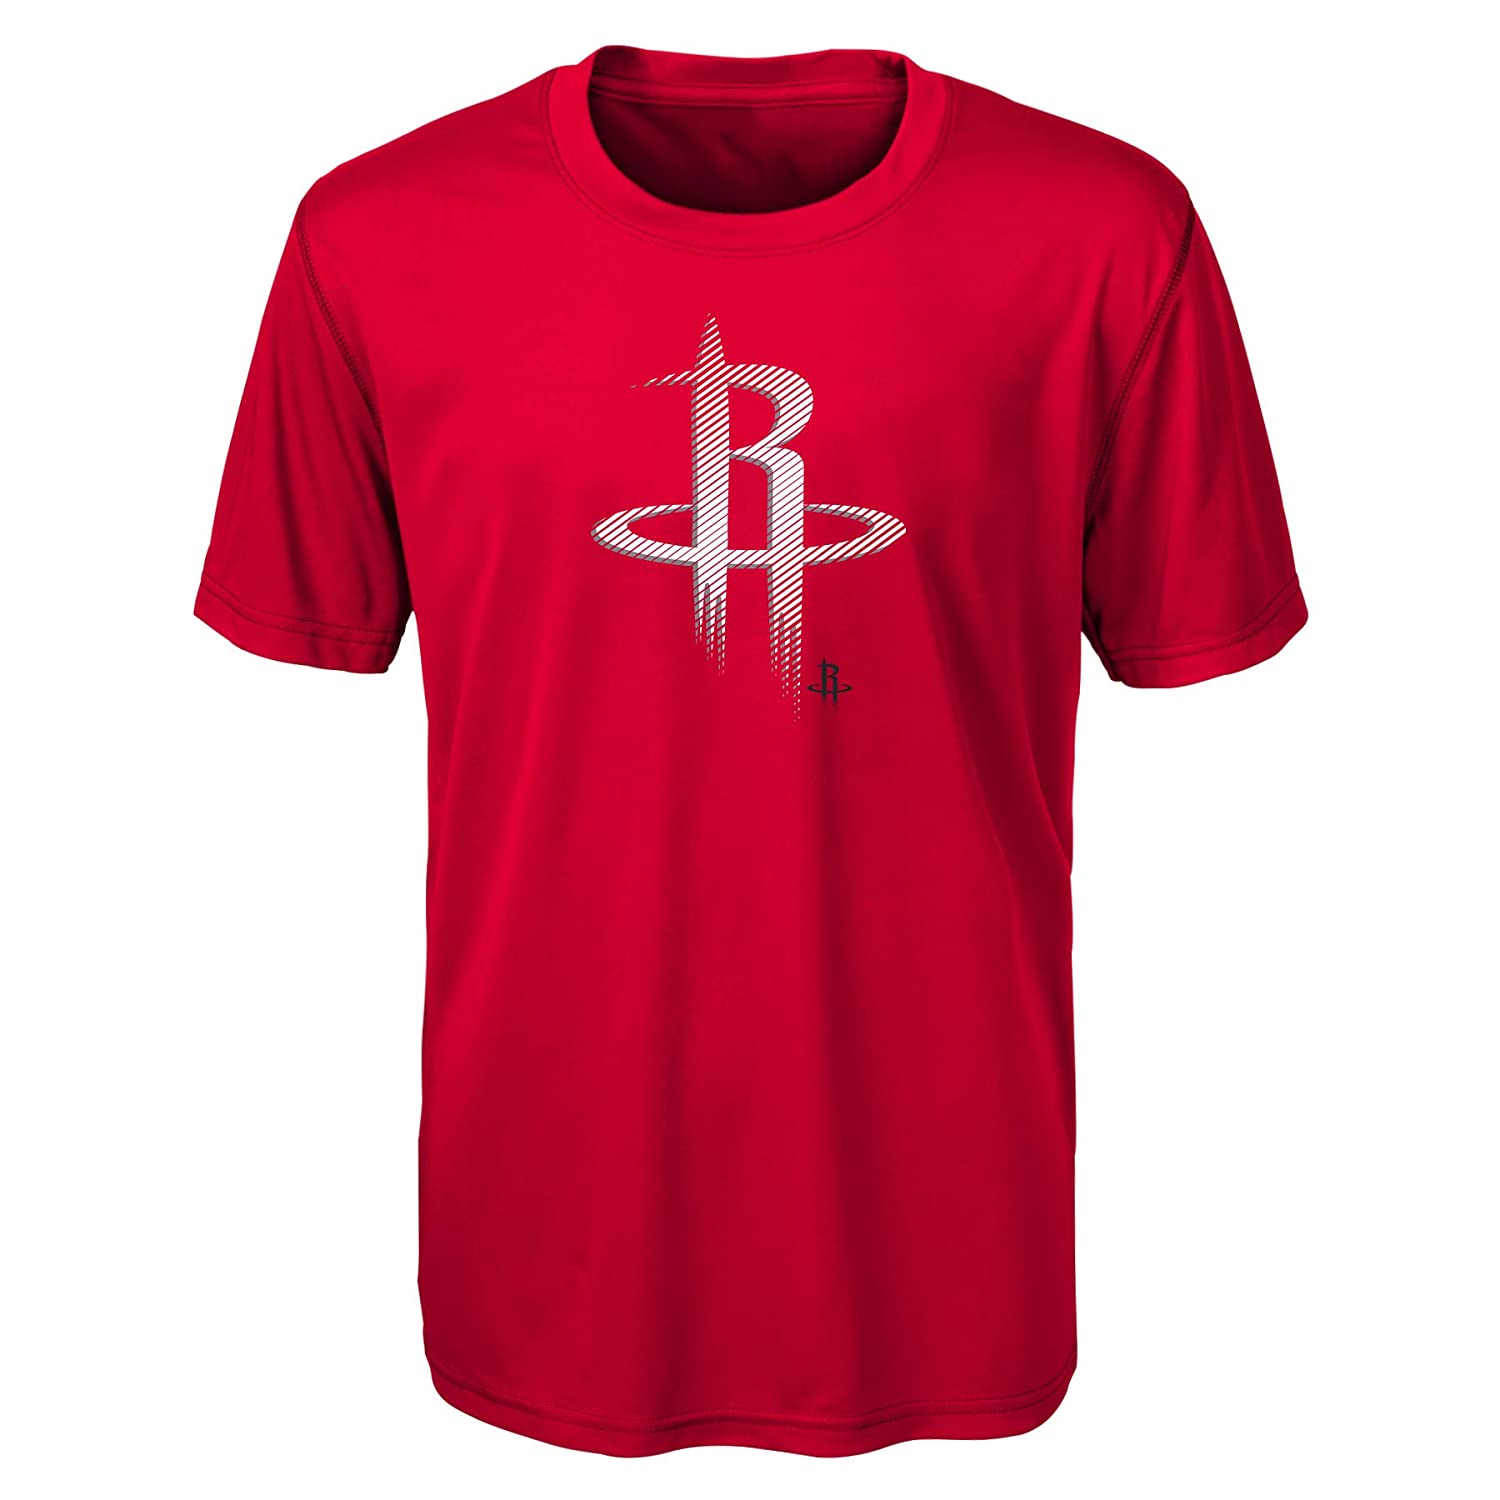 NBA Houston Rockets Kids /& Youth Boys Motion Offense Short Sleeve Performance Tee Red 7 Large